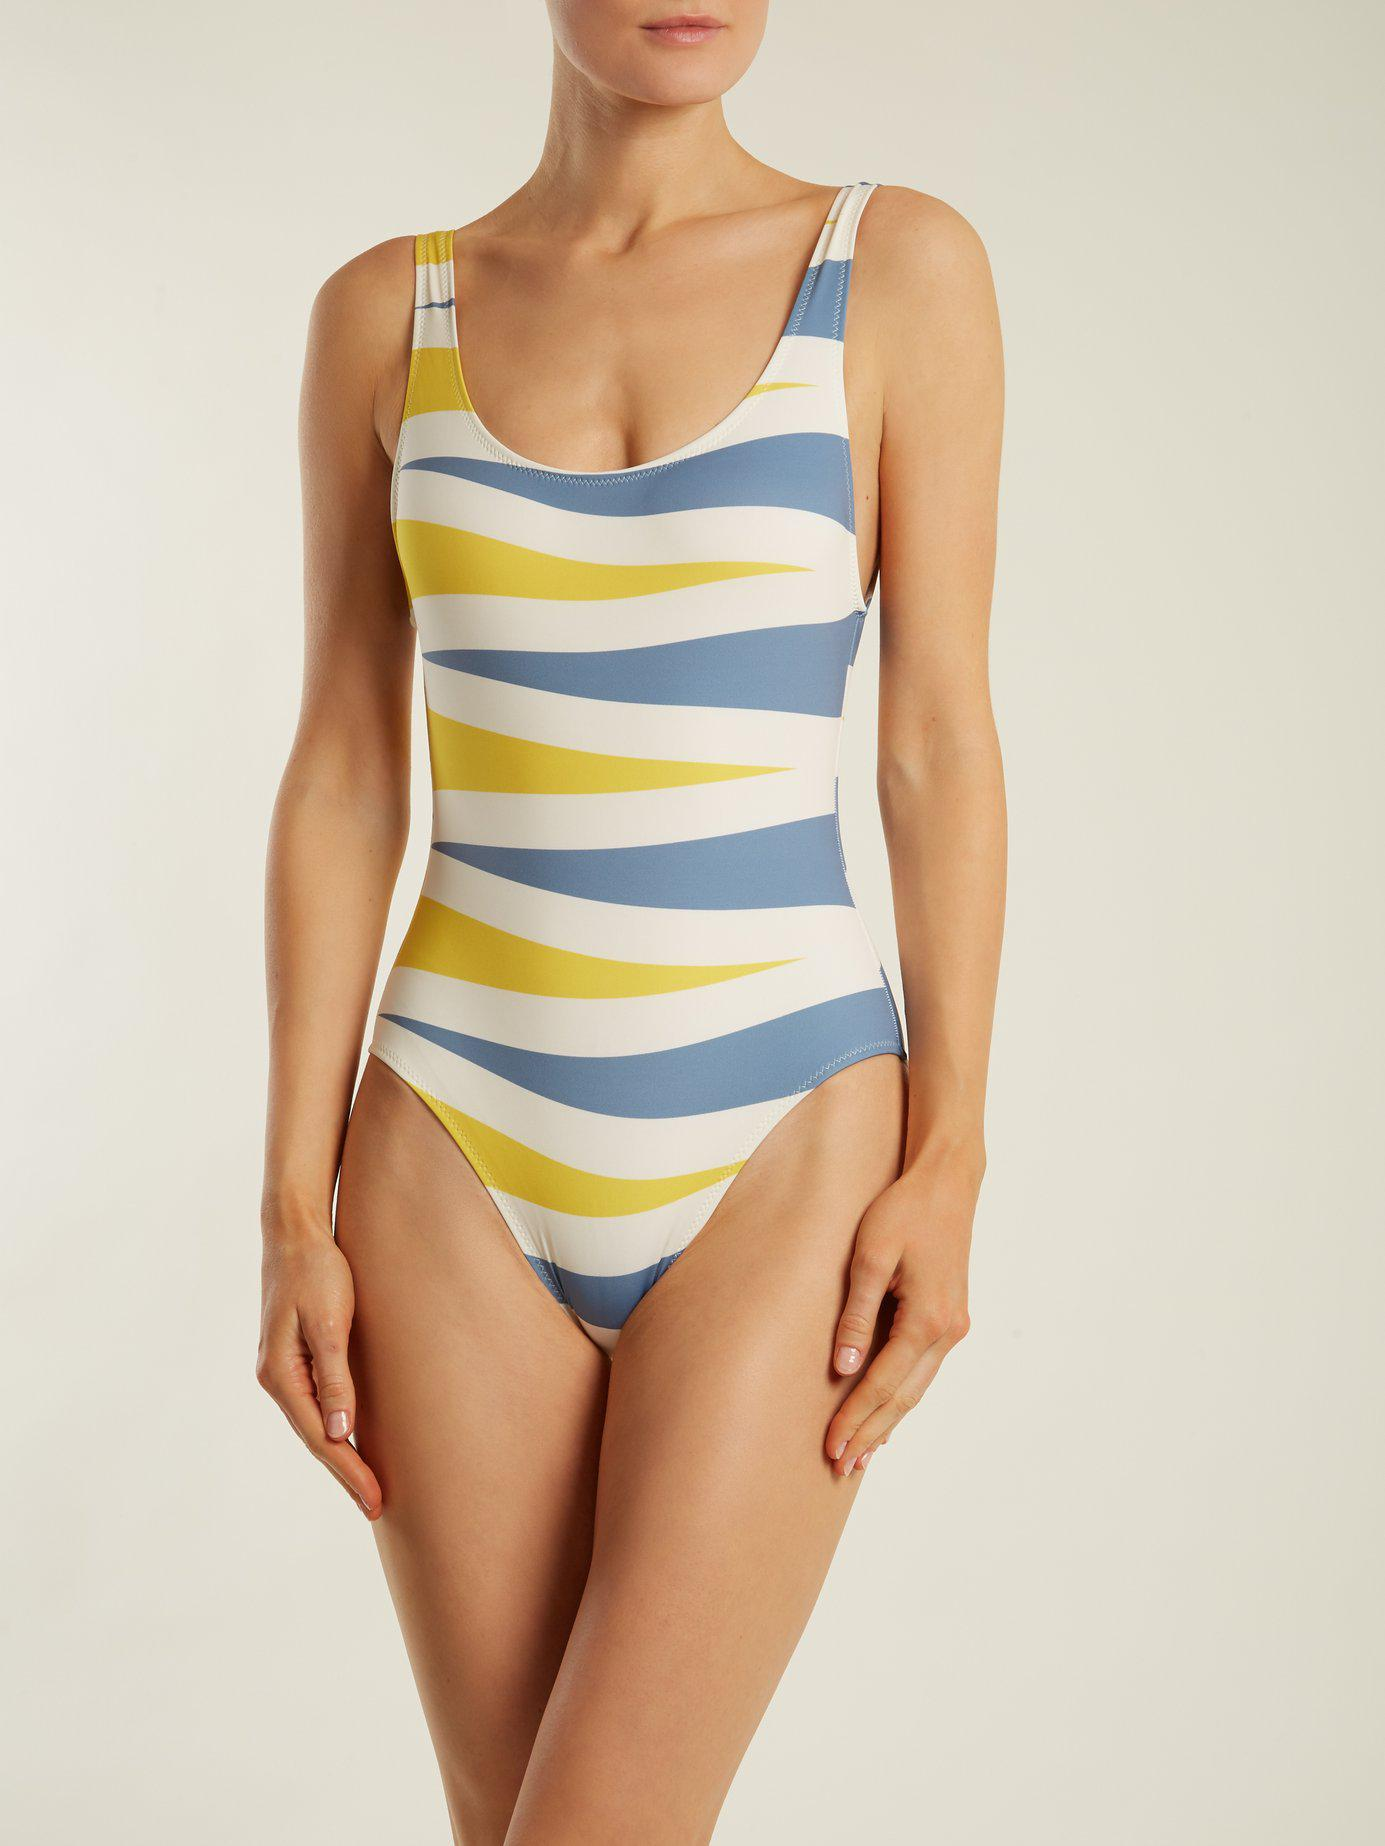 5d0a3af3a9775 Lyst - Solid & Striped The Anne Marie Backgammon Print Swimsuit